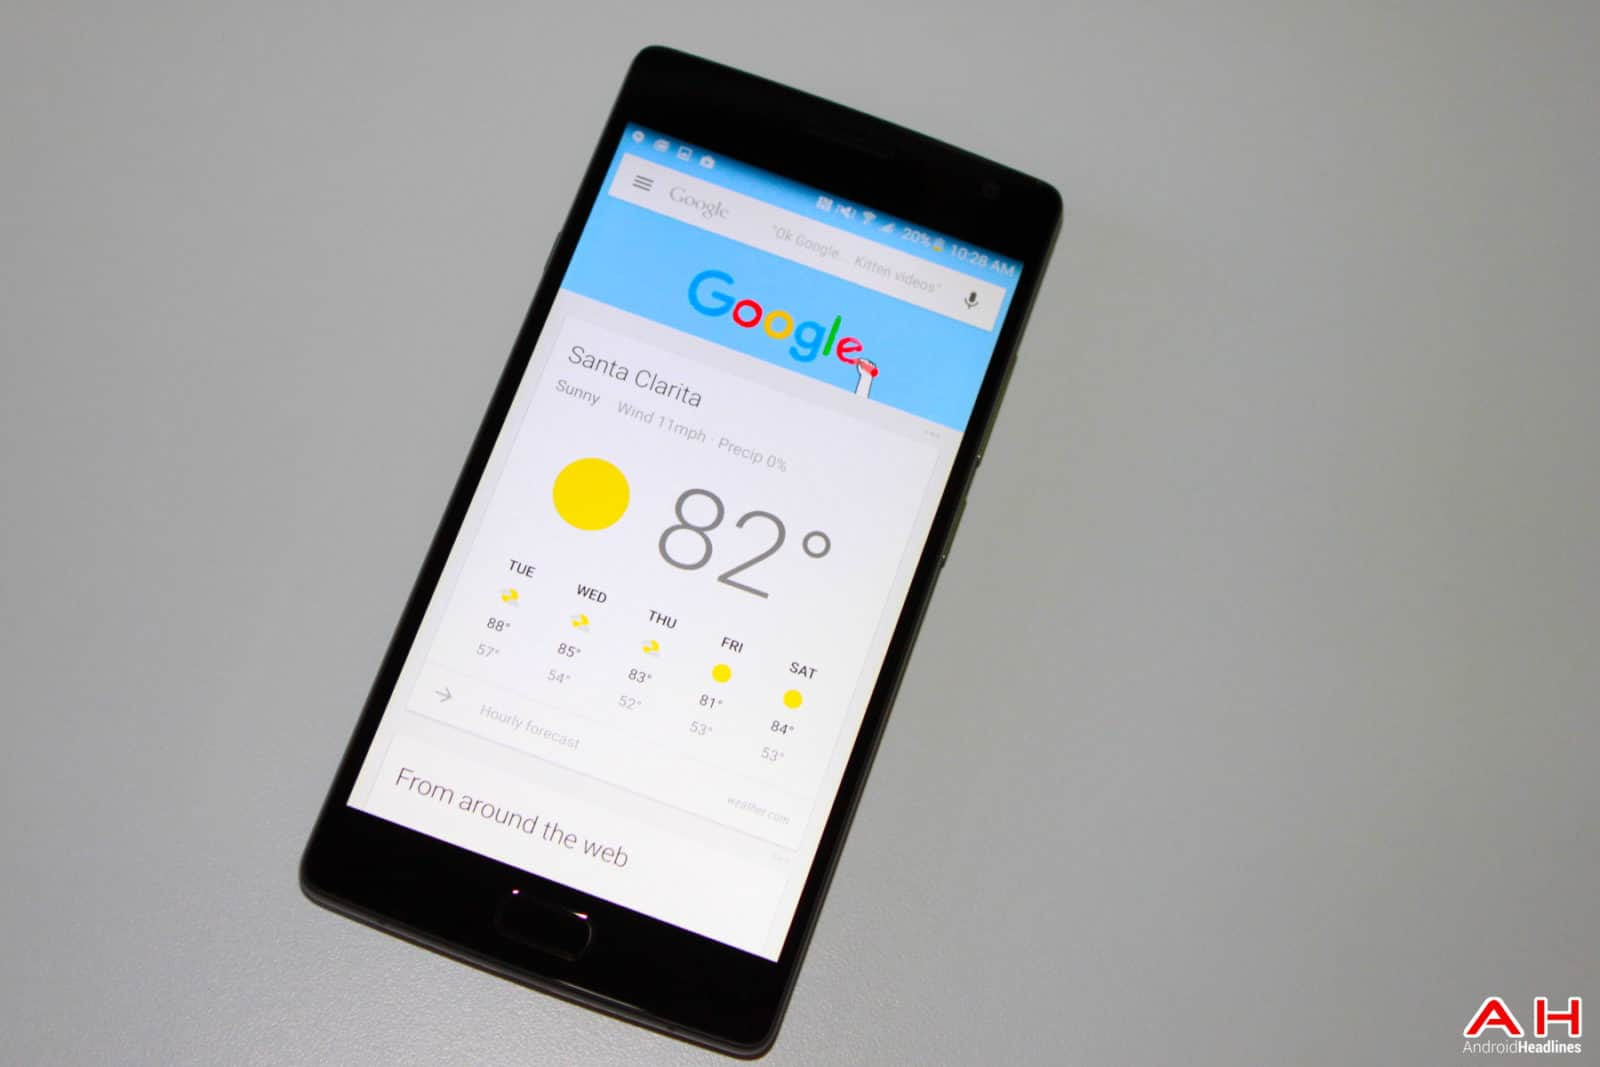 Android How To: Delete Google Now Search History